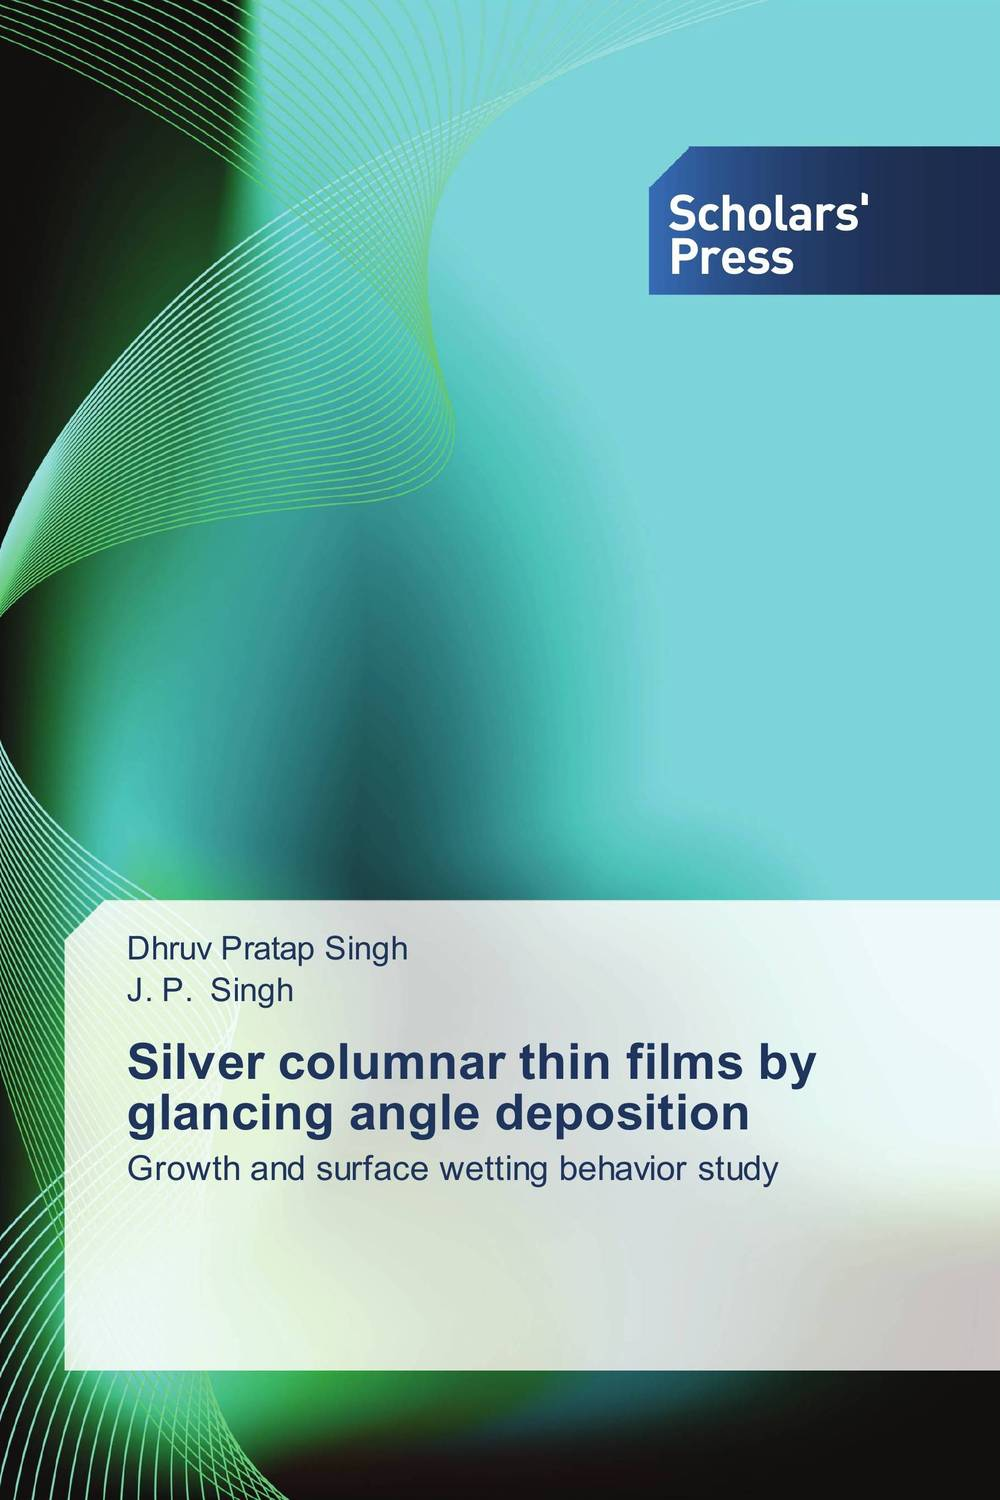 Silver columnar thin films by glancing angle deposition pressure dependent growth of lithium cobaltate thin films